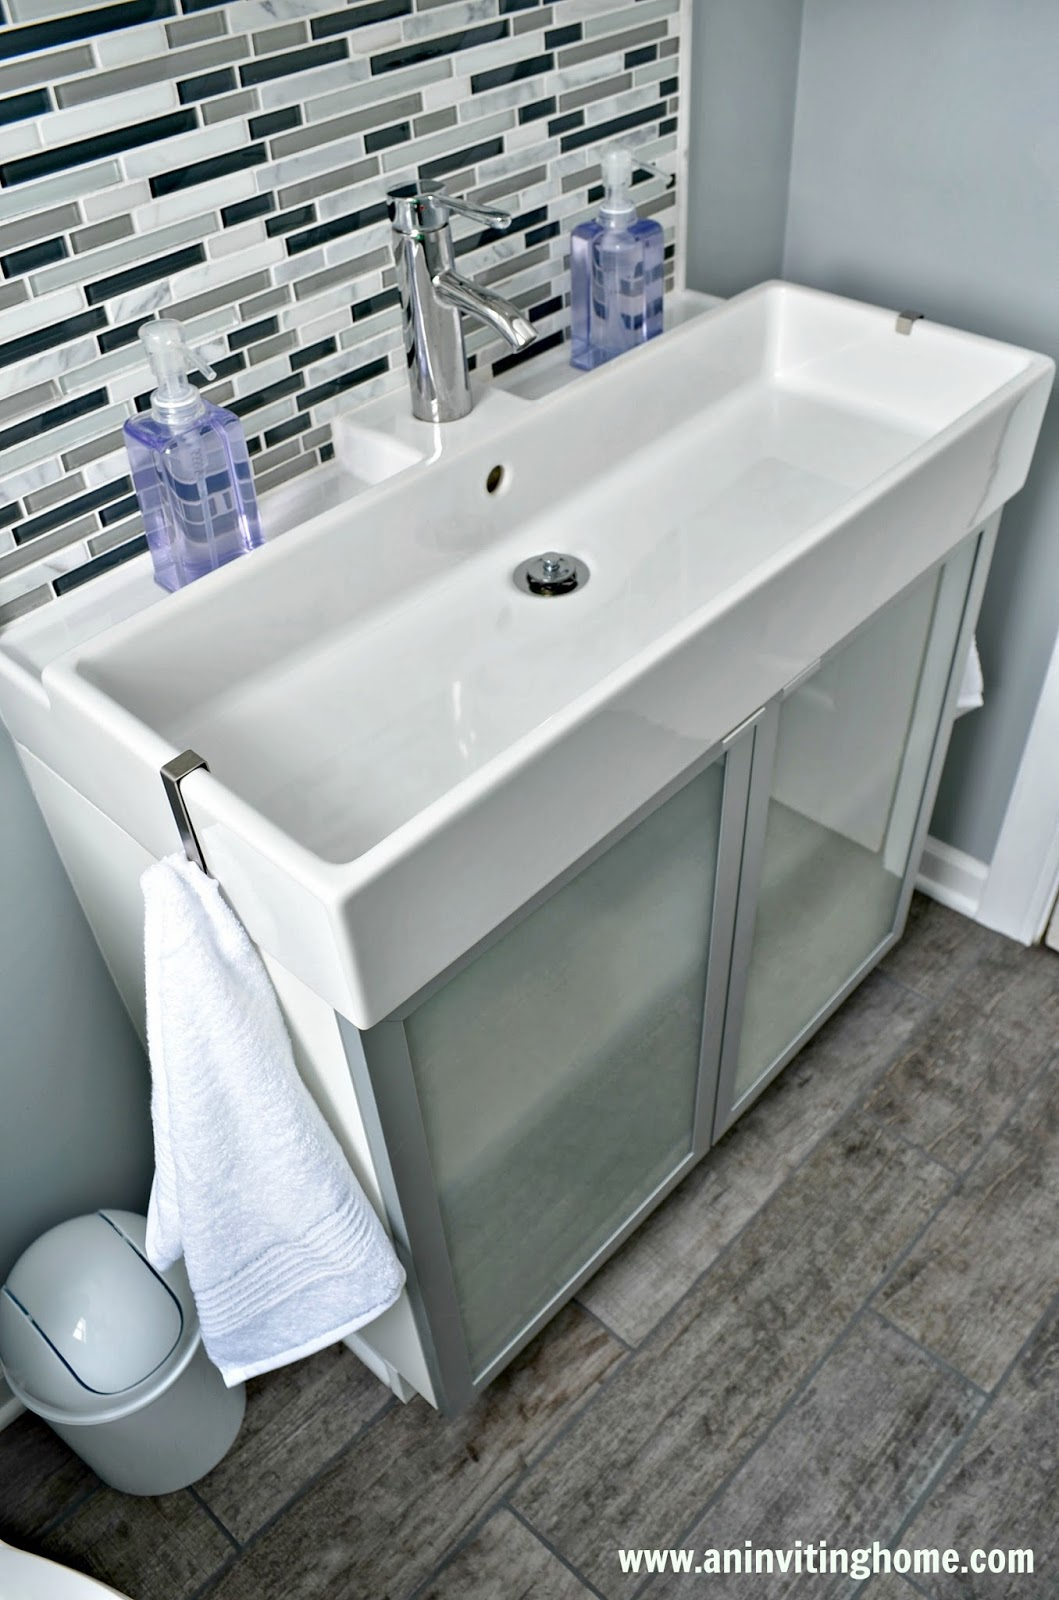 Ikea Bathroom Sink : of Ikea Bathroom Sink And Cabinet Picture With Trough Sink Bathroom ...